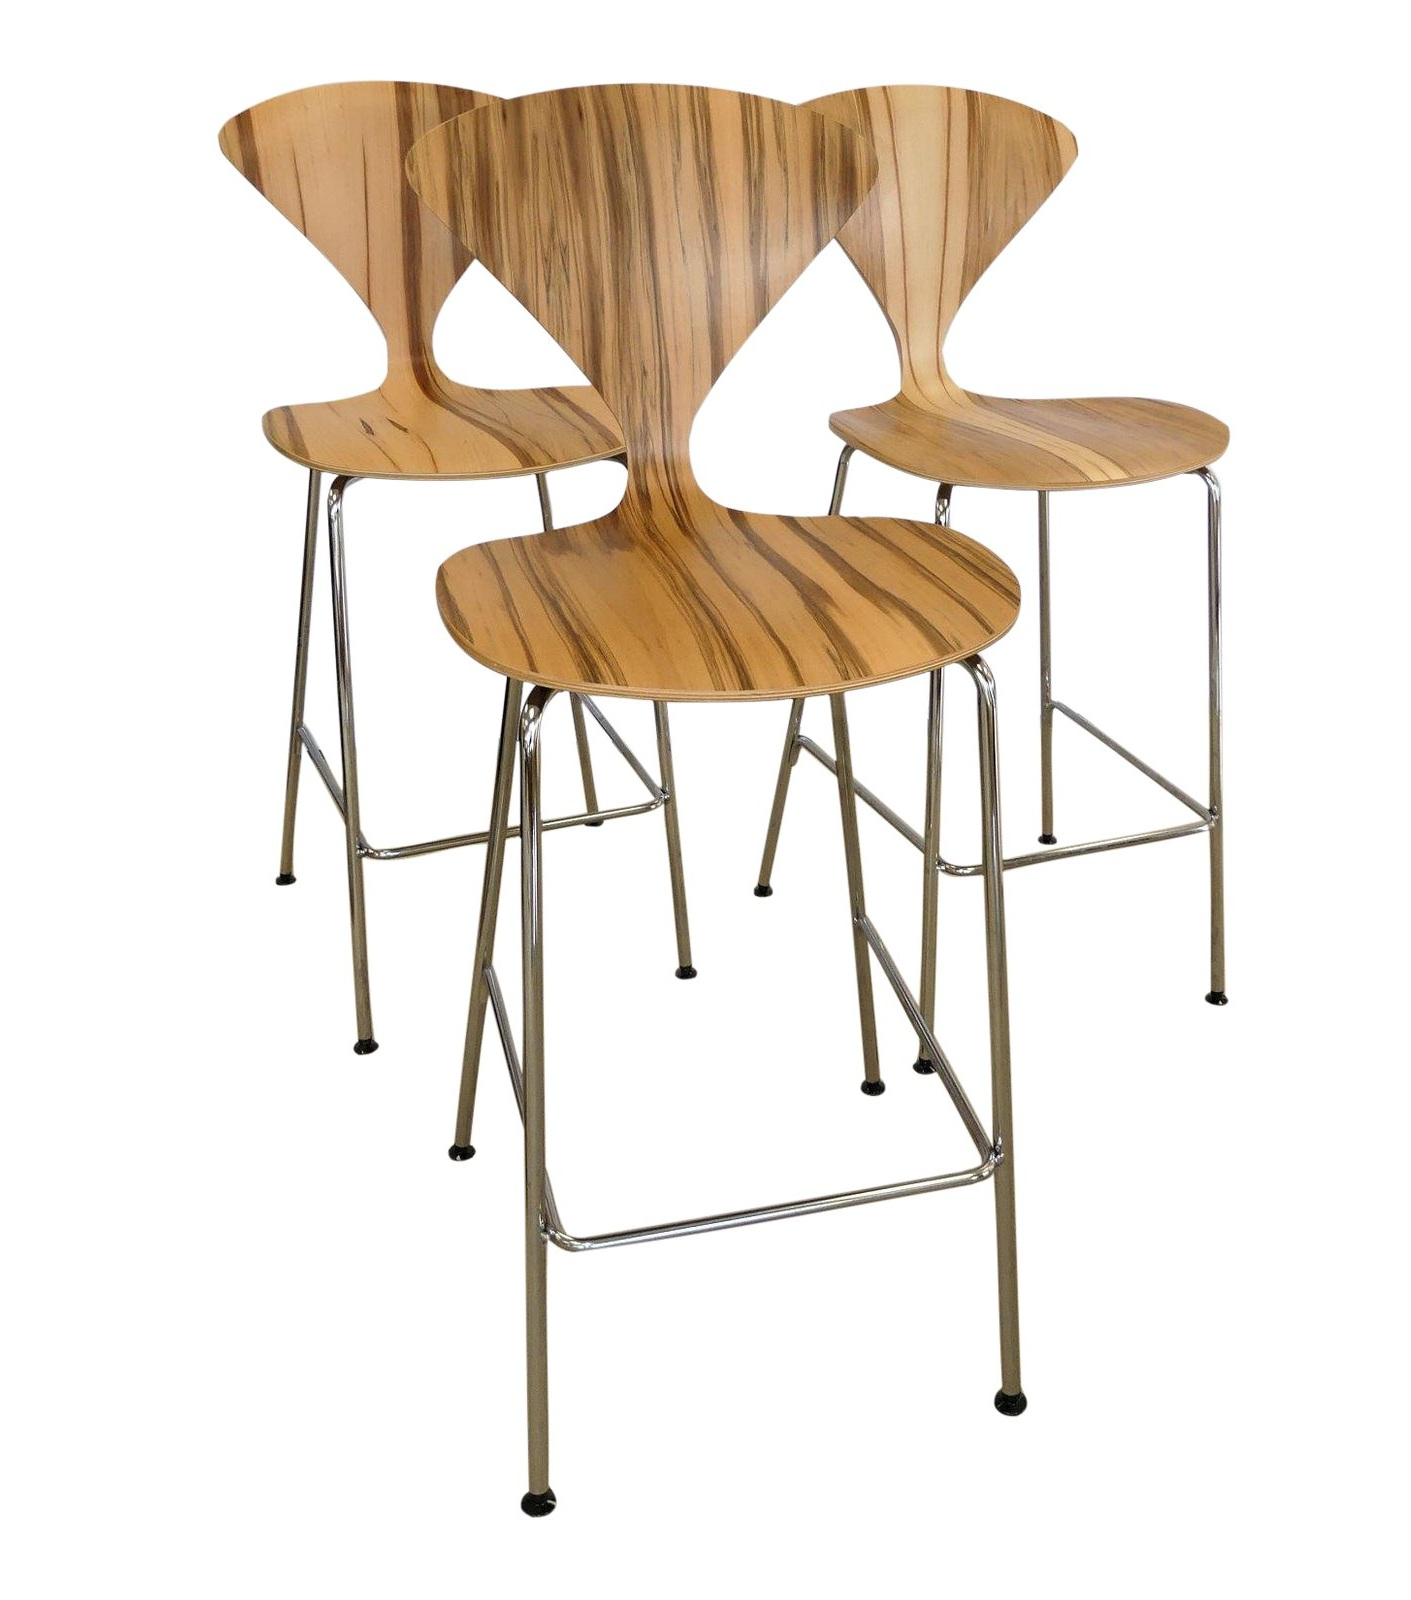 SOLD Set of 3 Norman Cherner Metal Leg Counter Stools